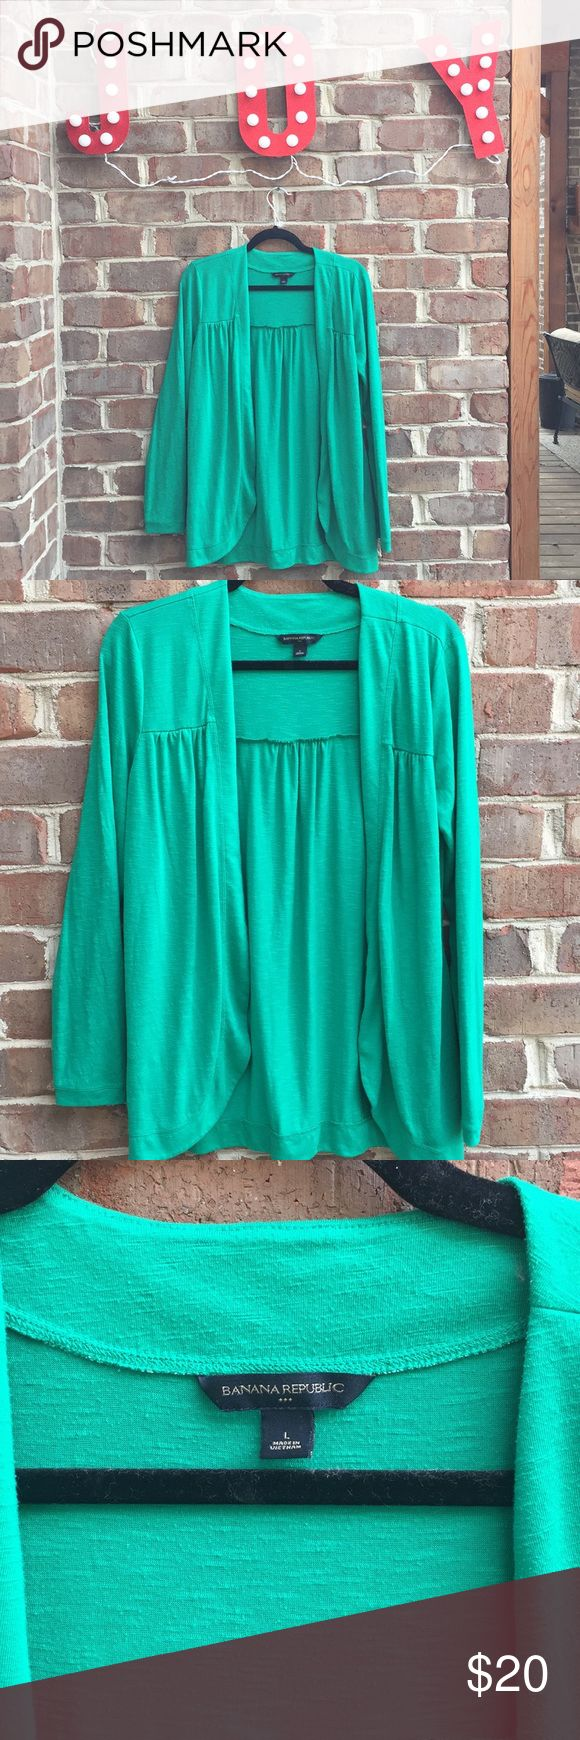 Women's Banana Republic sweater 🎄 Women's Banana Republic sweater. Green. Size large. Great condition! 🎄 Free gift if you spend $50 or more on listings with a Christmas tree emoji! Banana Republic Sweaters Cardigans